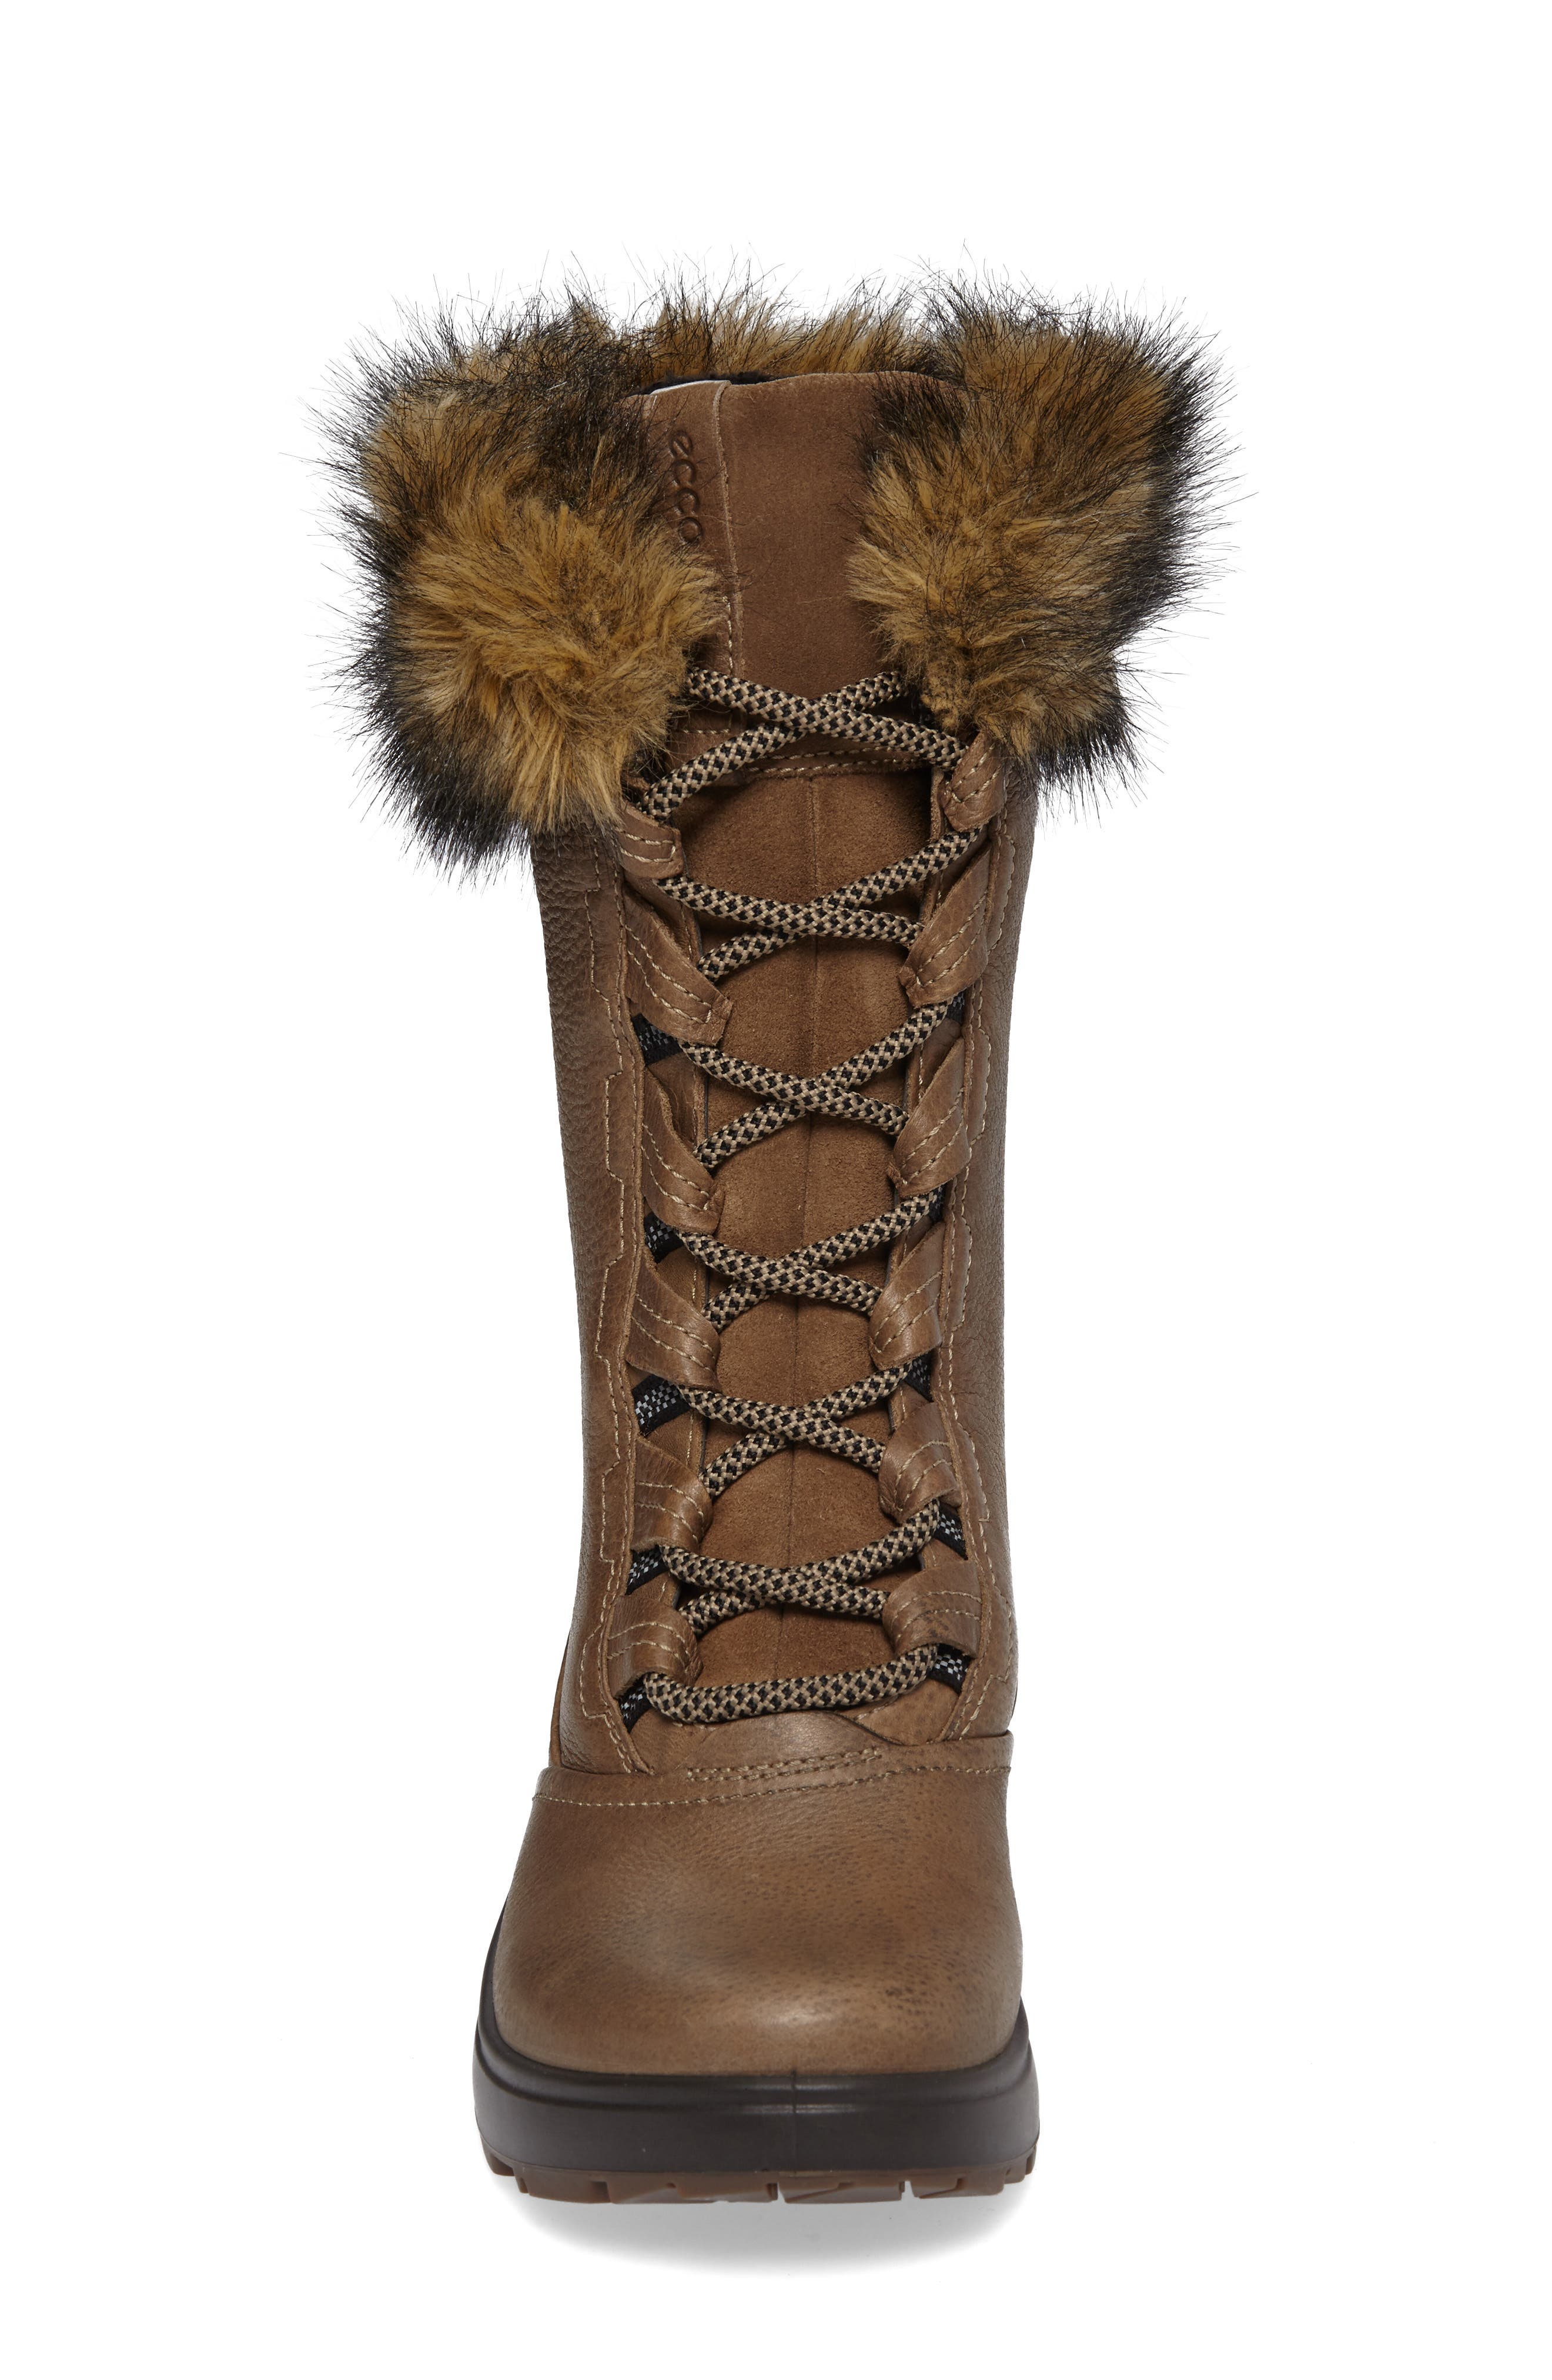 Noyce Siberia Hydromax Water Resistant Winter Boot with Faux Fur Trim,                             Alternate thumbnail 4, color,                             212